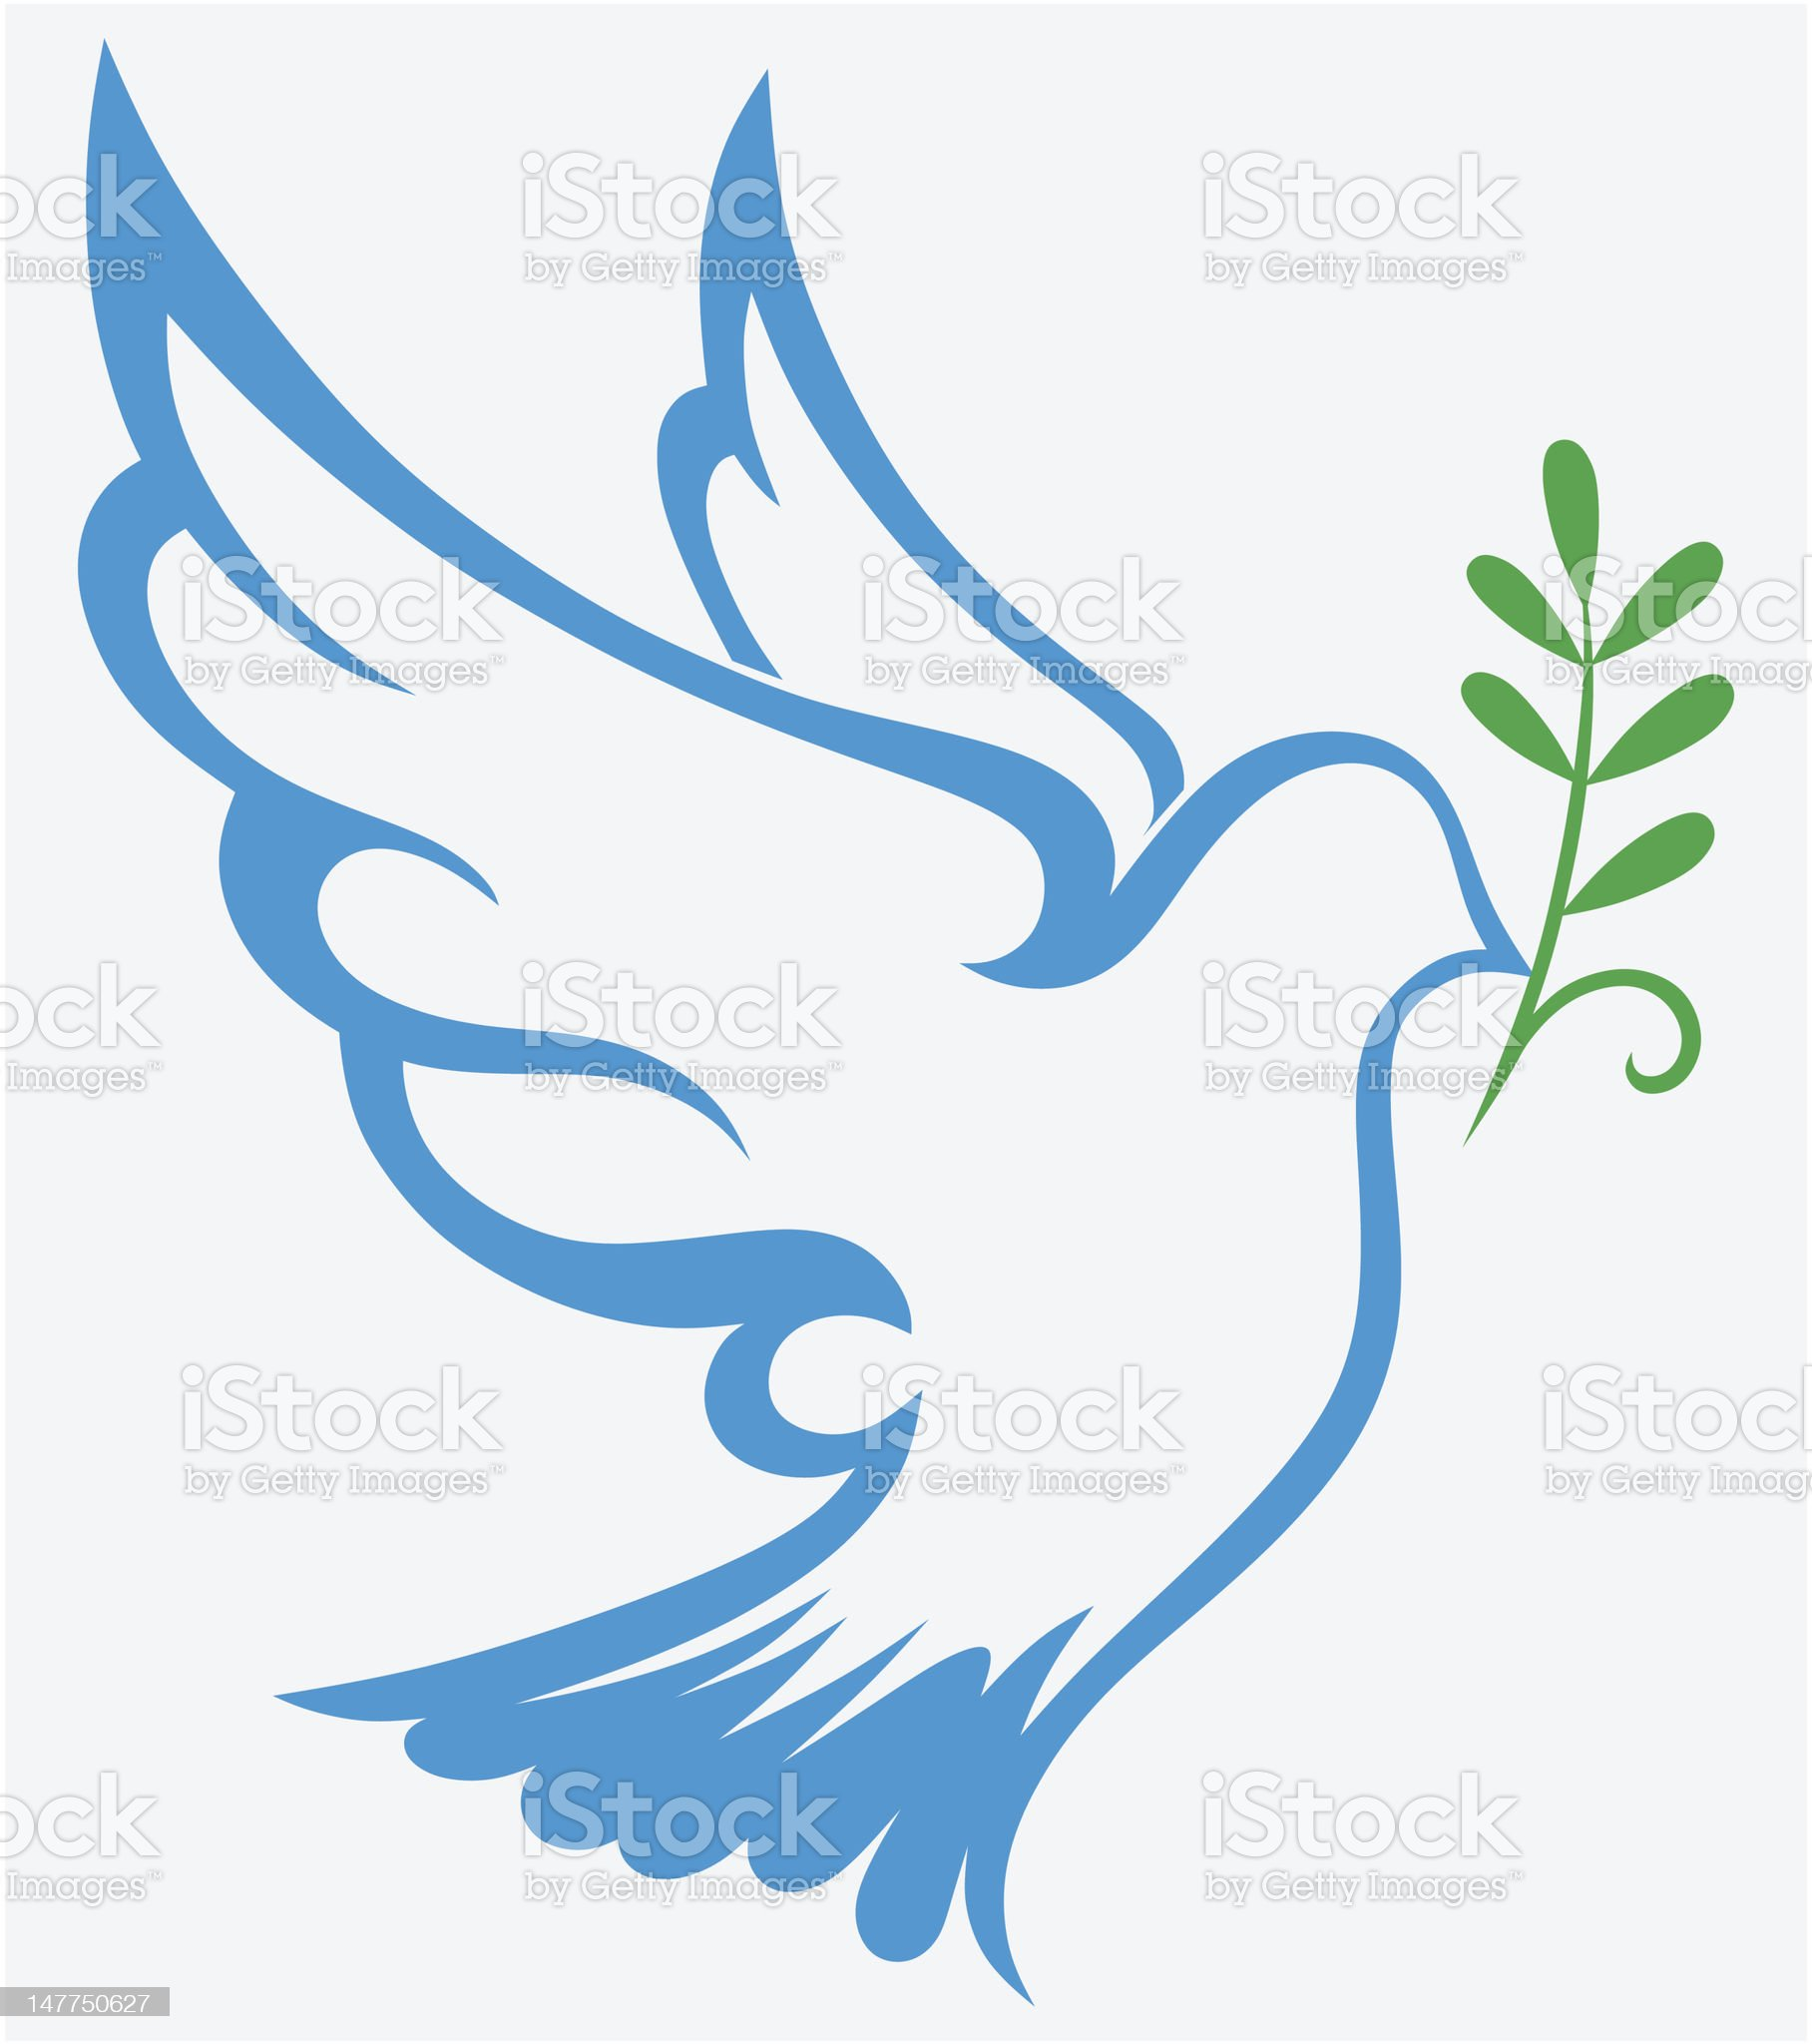 An illustration of a dove carrying a leaf royalty-free stock vector art